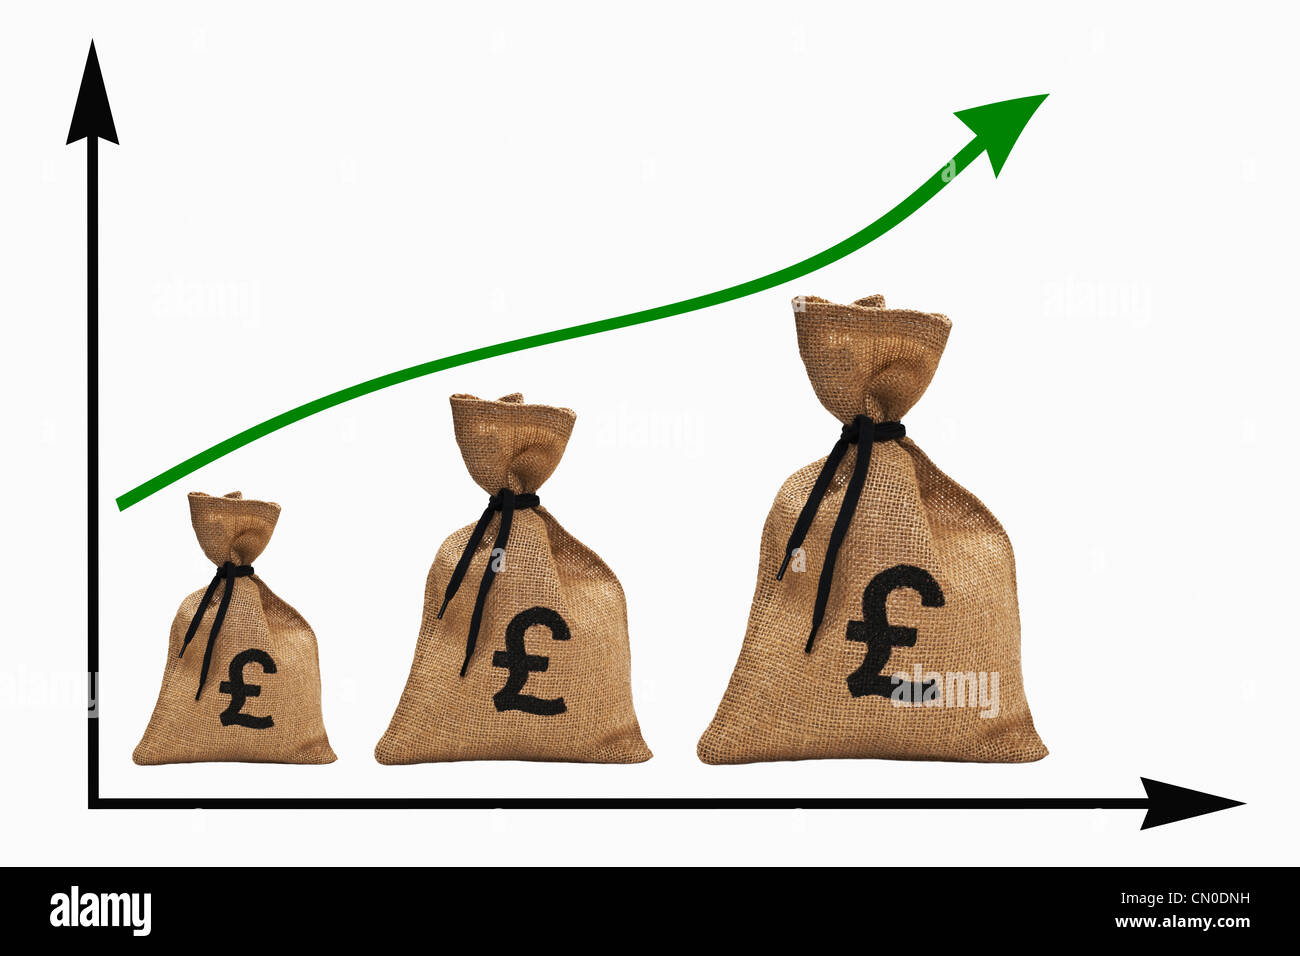 a chart with an increasing curve, three different big money bags with Pound Sterling     currency sign next to each - Stock Image